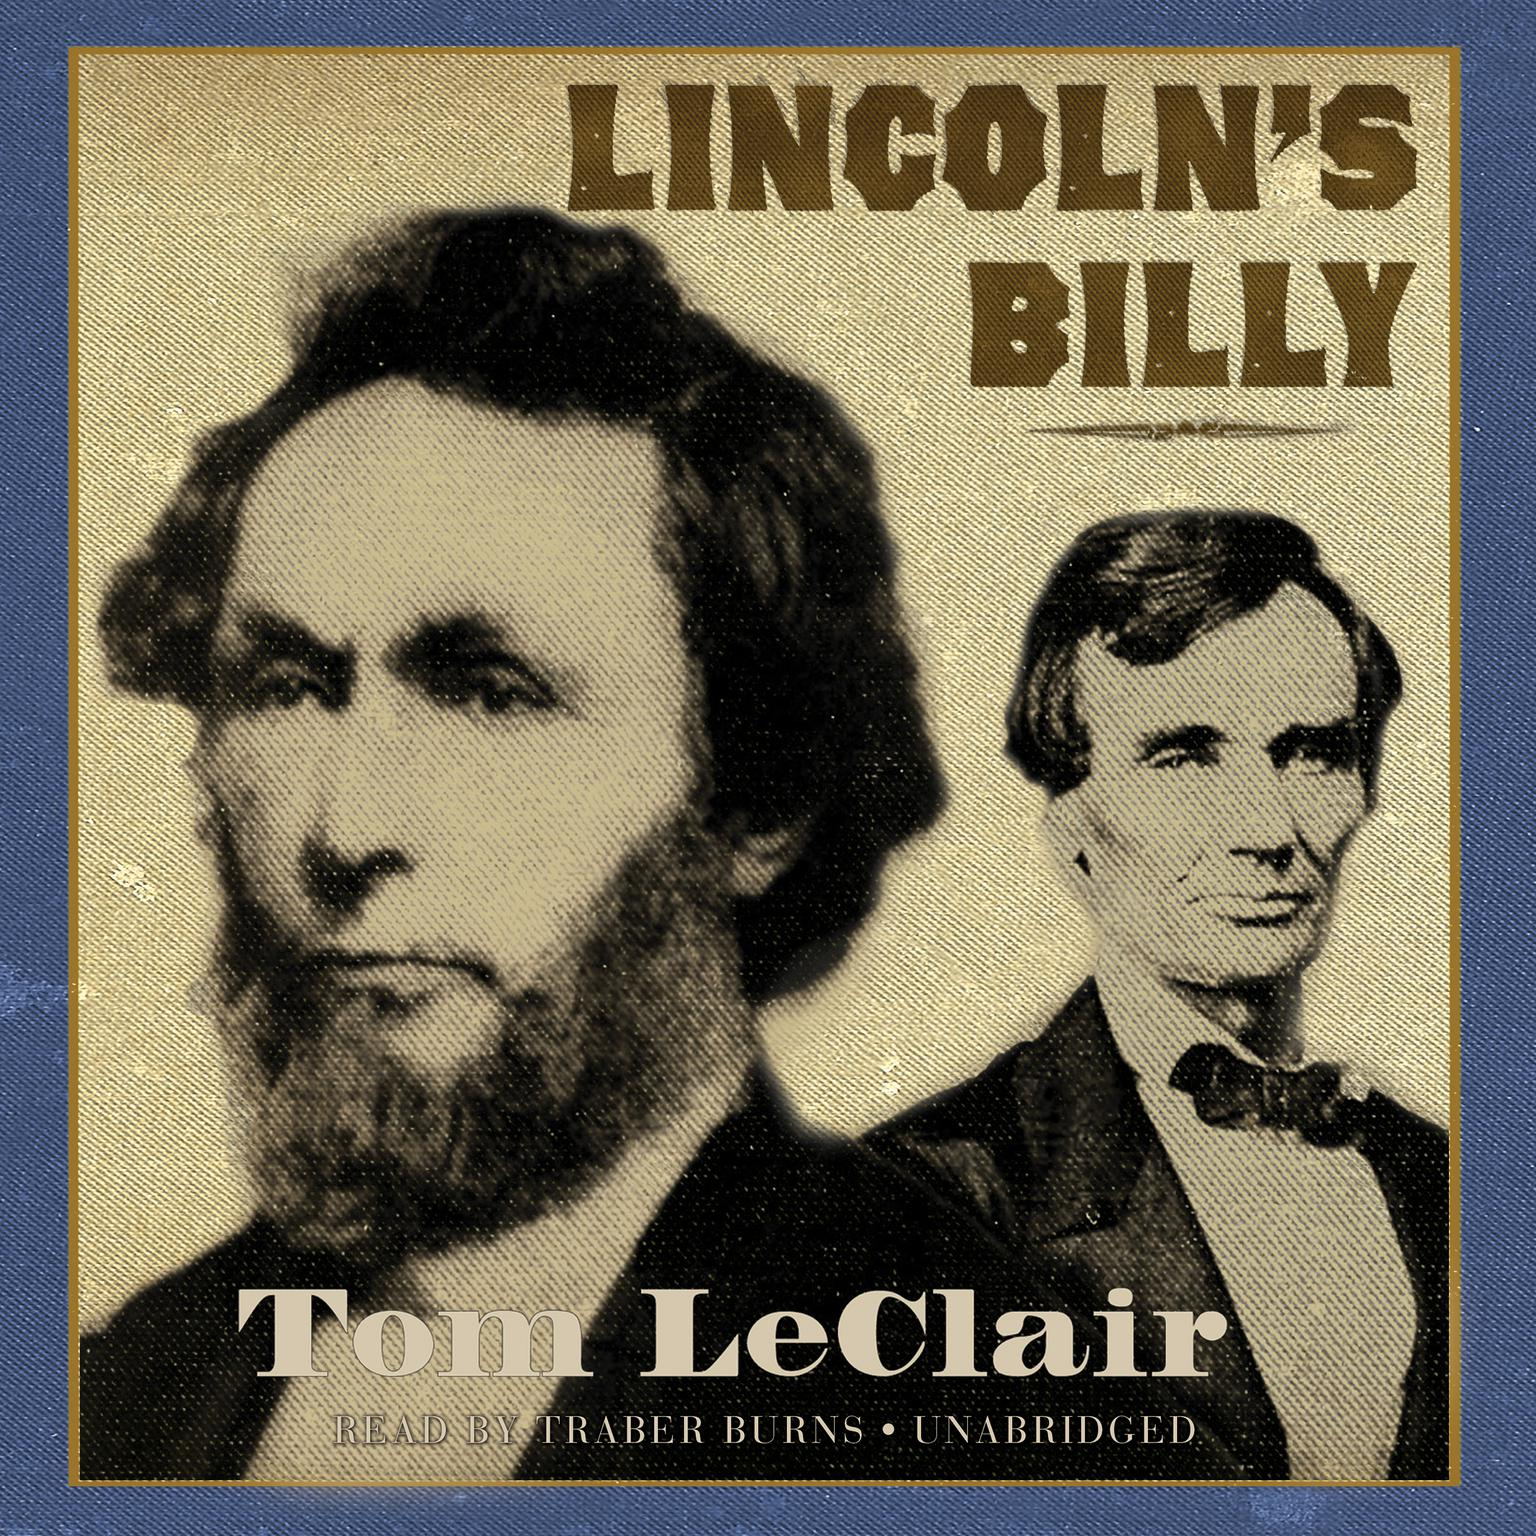 Printable Lincoln's Billy Audiobook Cover Art